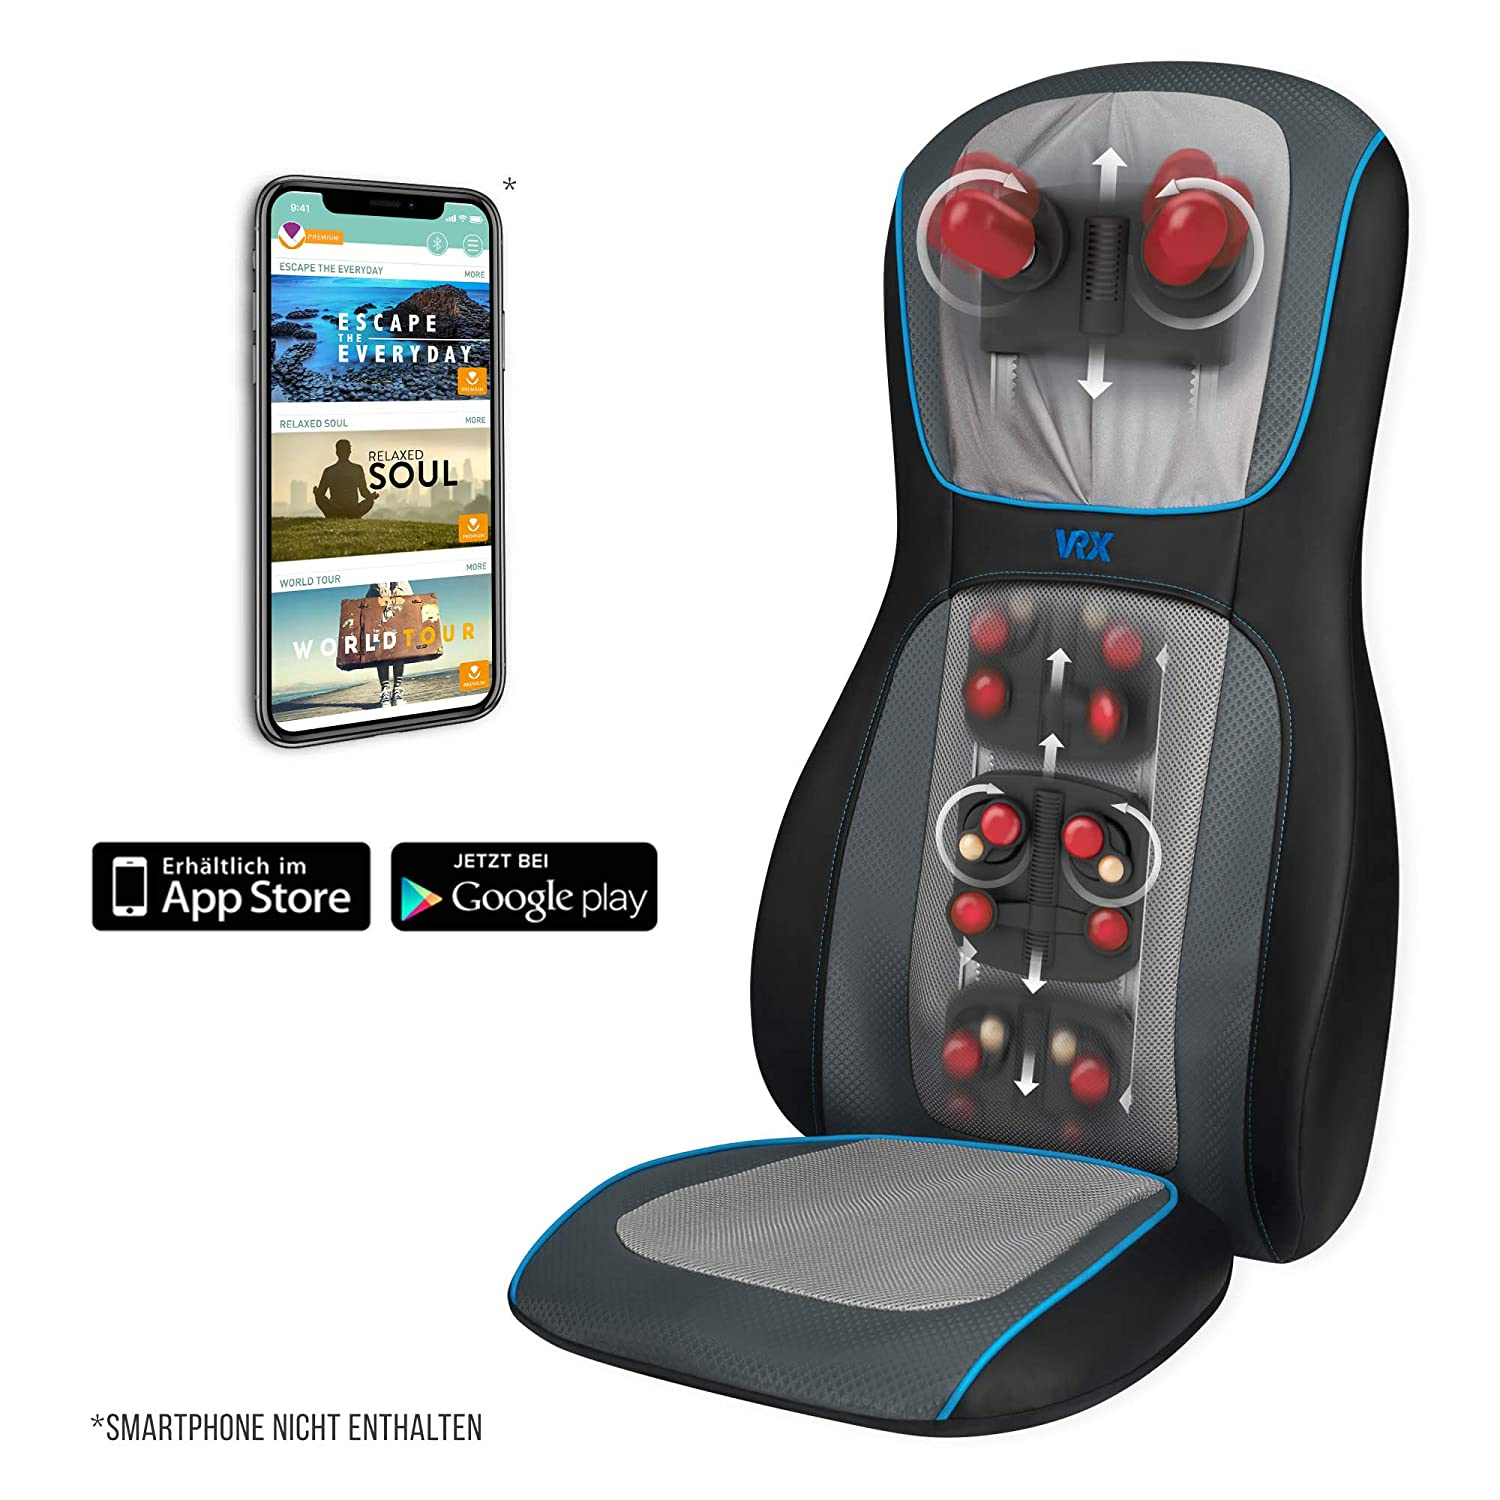 HoMedics Massagematte - HoMedics MCS-1000HVR-EU Massagesitzauflage - Massageauflage mit Virtual Reality App